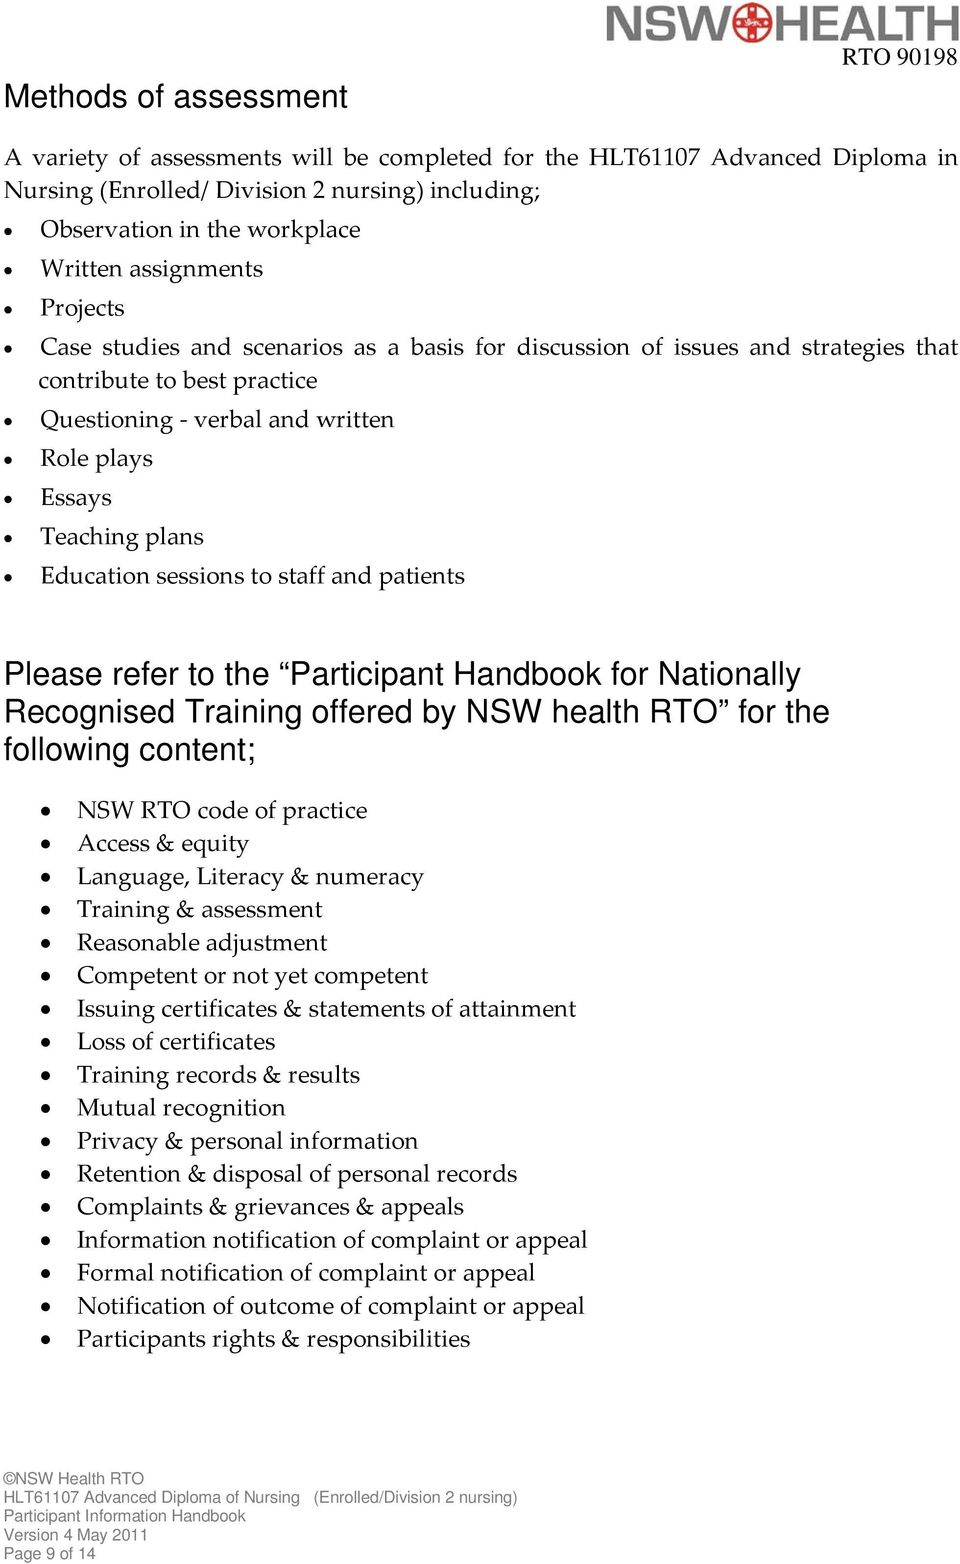 Education sessions to staff and patients Please refer to the Participant Handbook for Nationally Recognised Training offered by NSW health RTO for the following content; NSW RTO code of practice